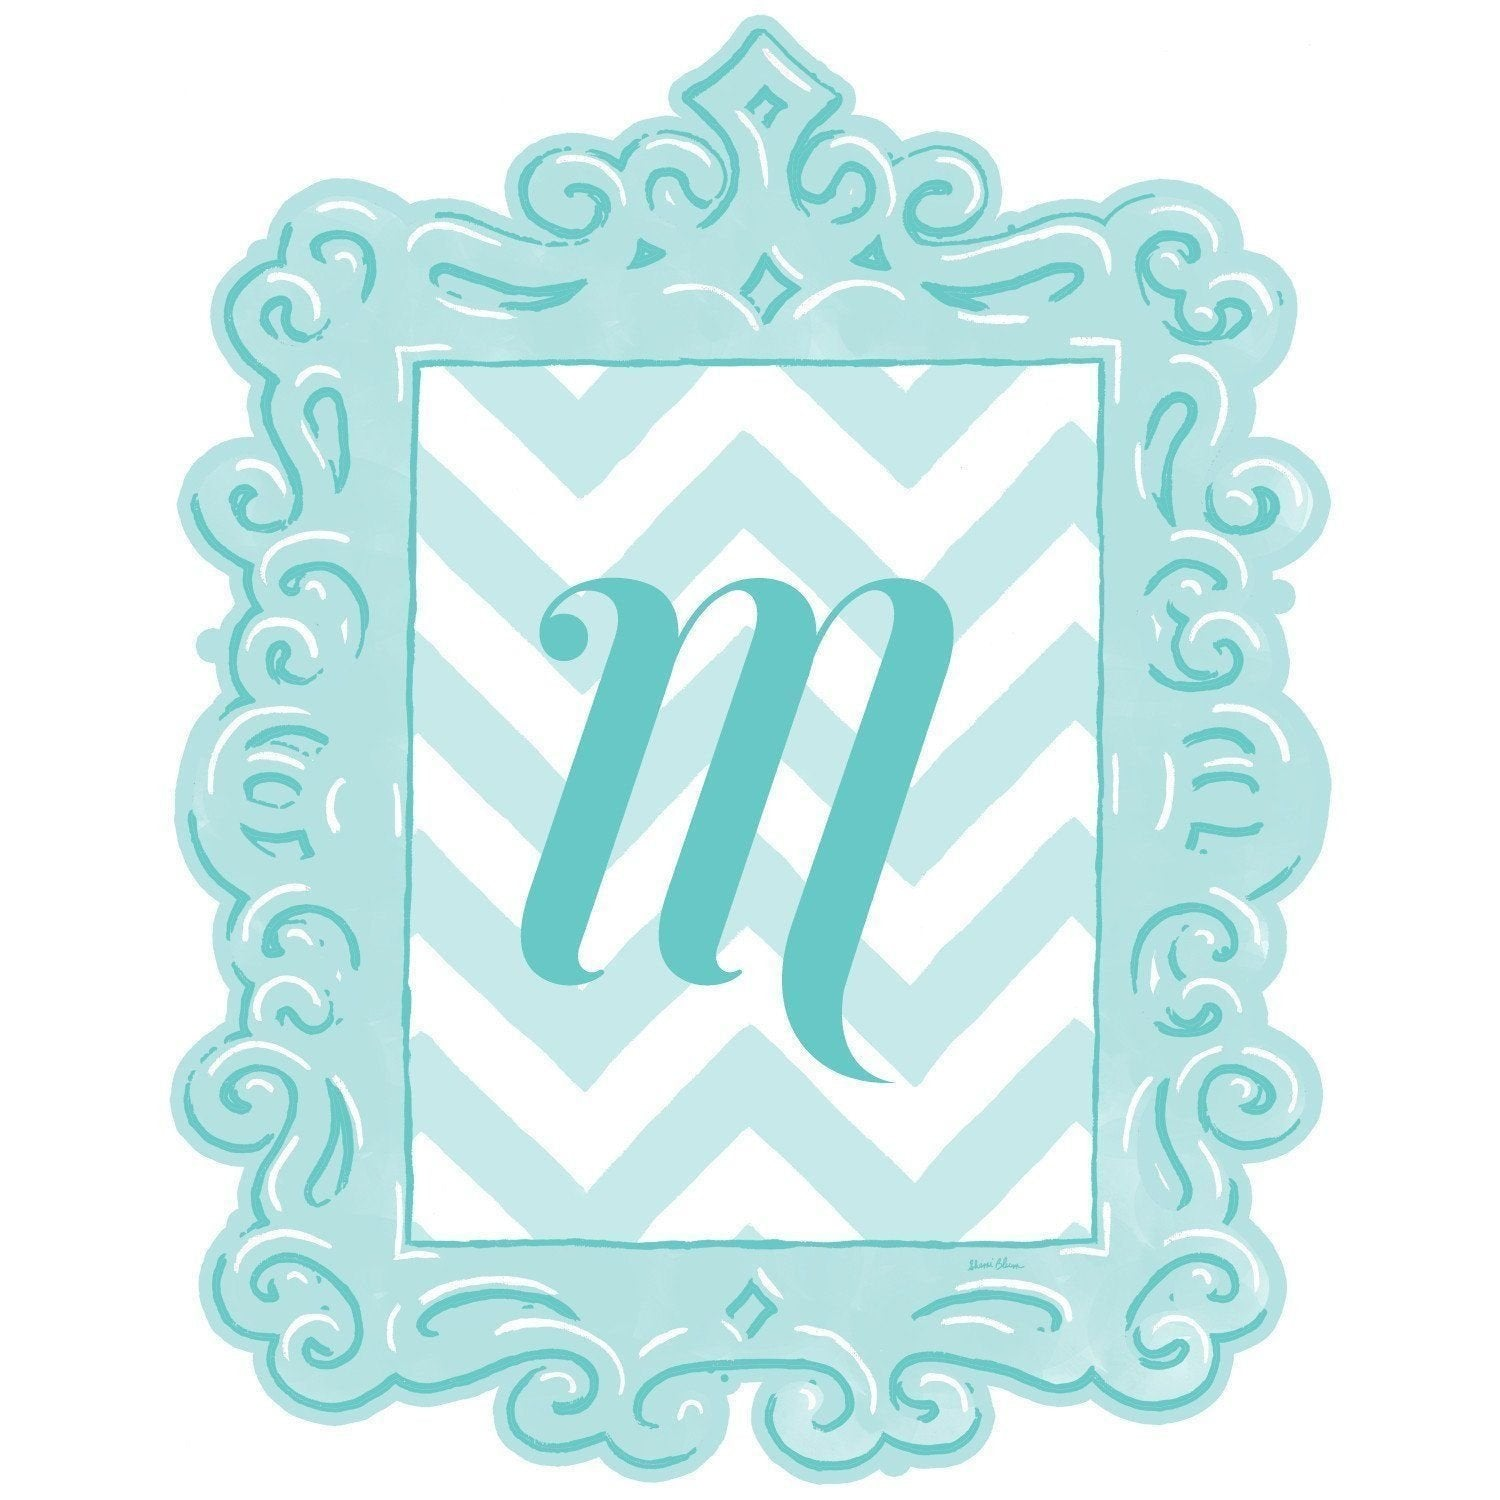 Framed Chevron Monogram Wall Decal in Turquoise-Decals-Default-Jack and Jill Boutique